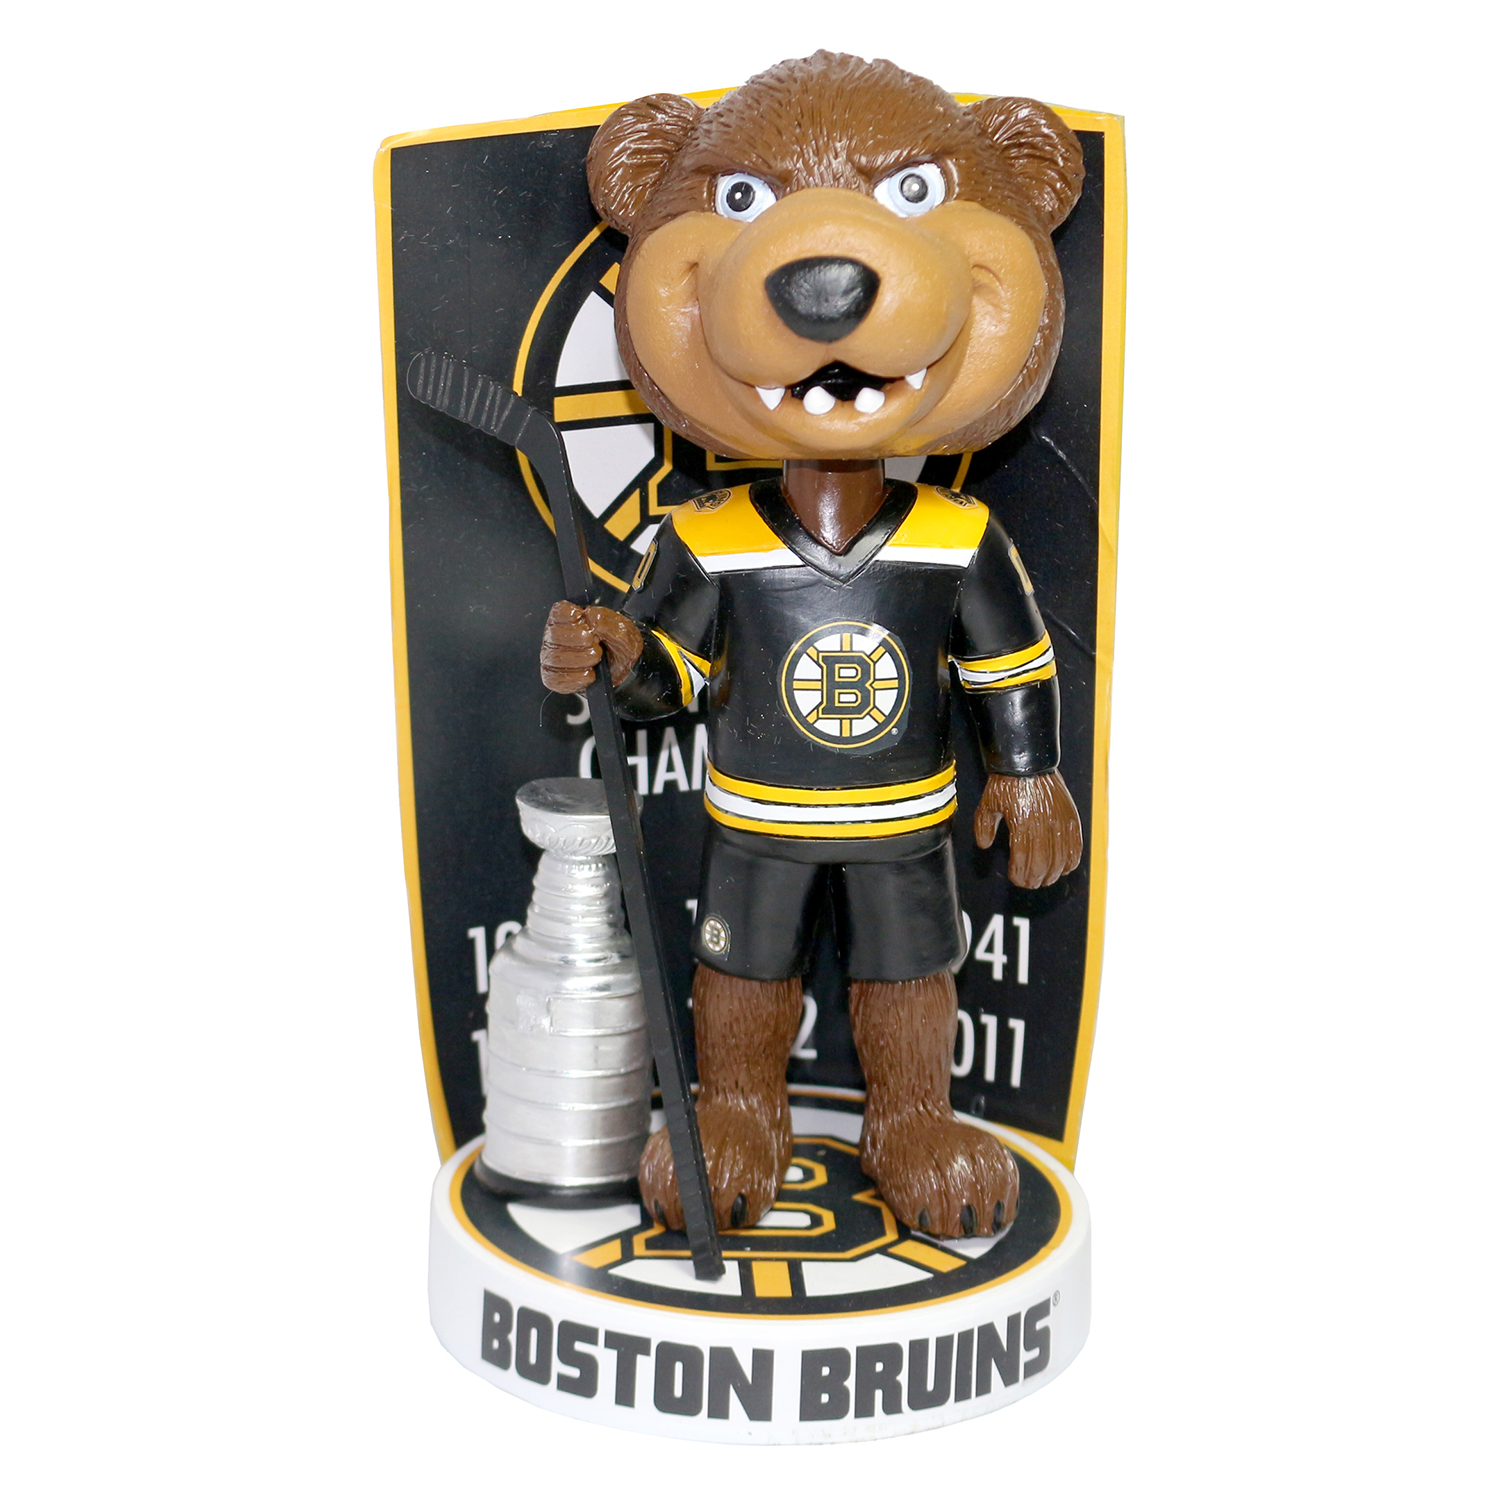 Boston Bruins Blades Stanley Cup Champions Banner Mascot Bobblehead